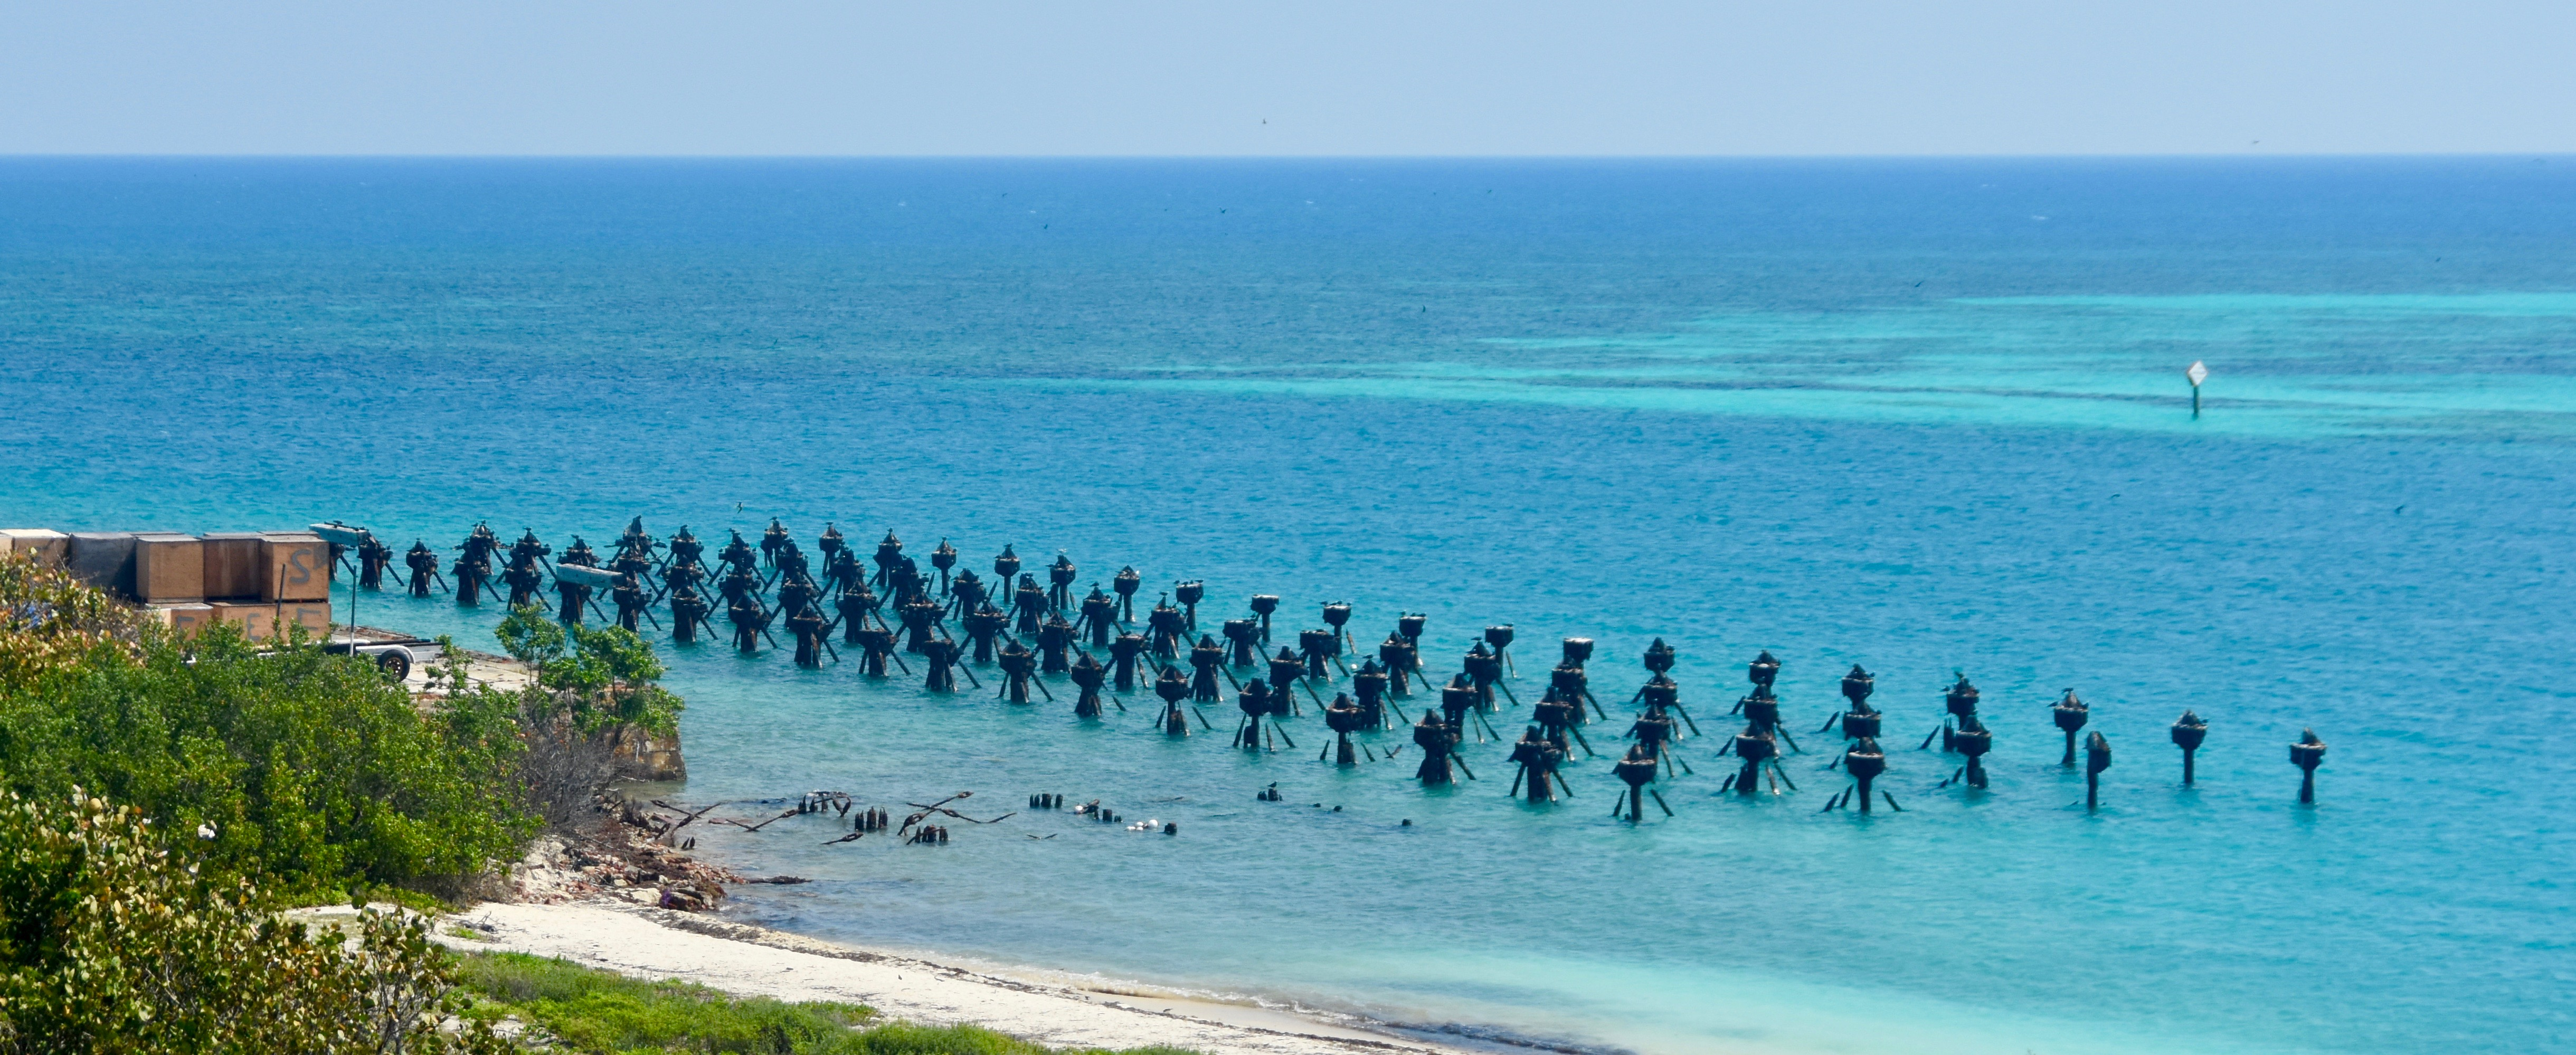 Remains of Coaling Pier, Dry Tortugas